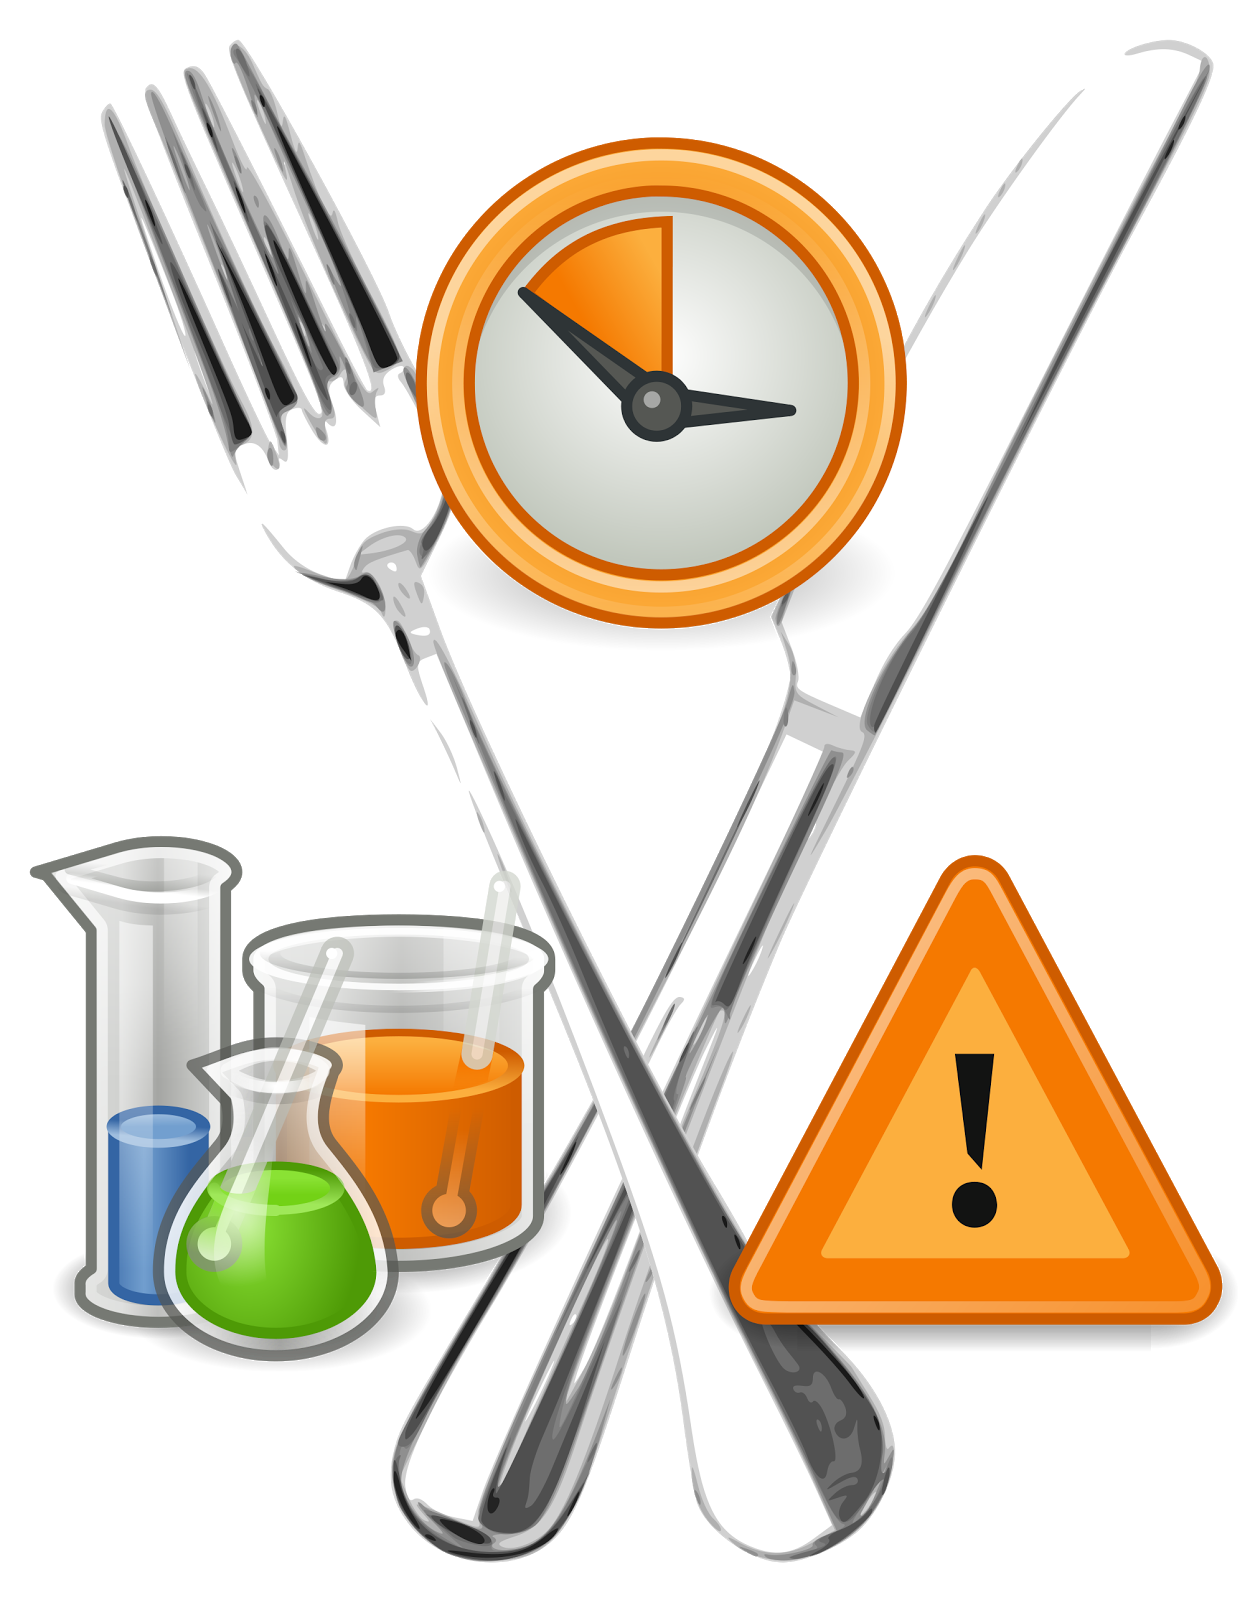 And the technology behind. Scientist clipart food scientist